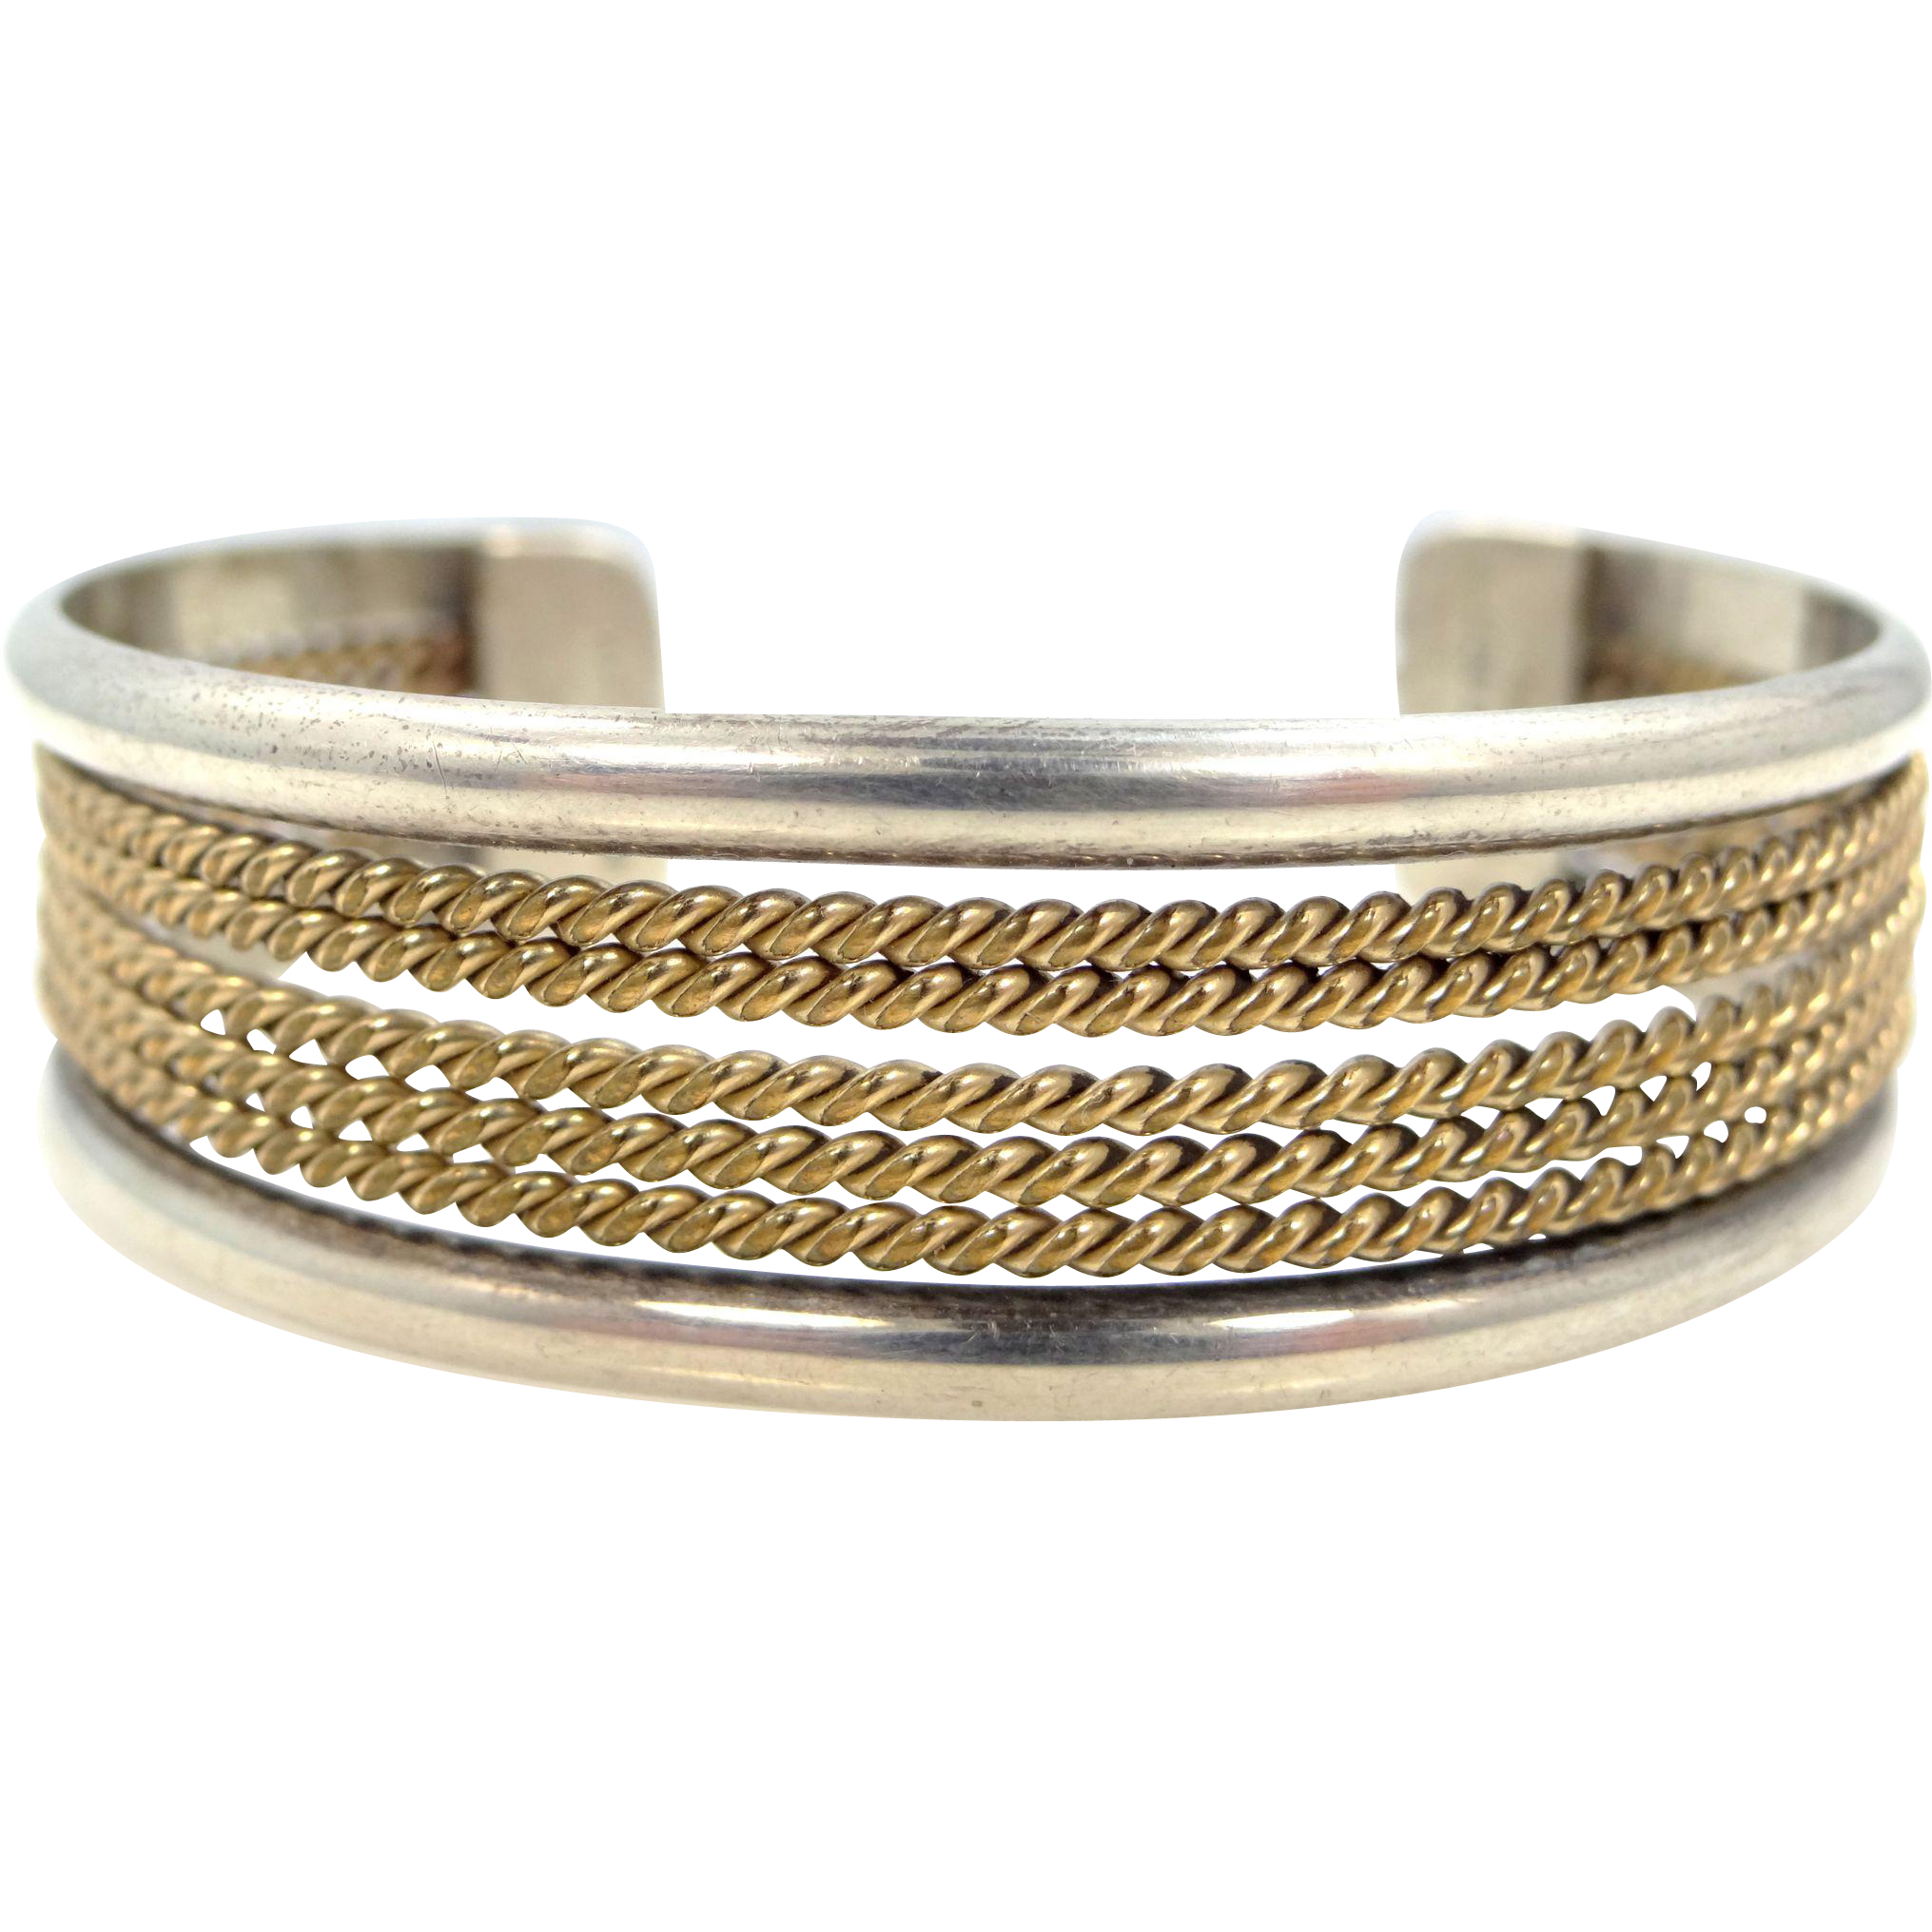 Navajo Robert Johnson Sterling and Gold Fld. Cuff Bracelet Full Signature